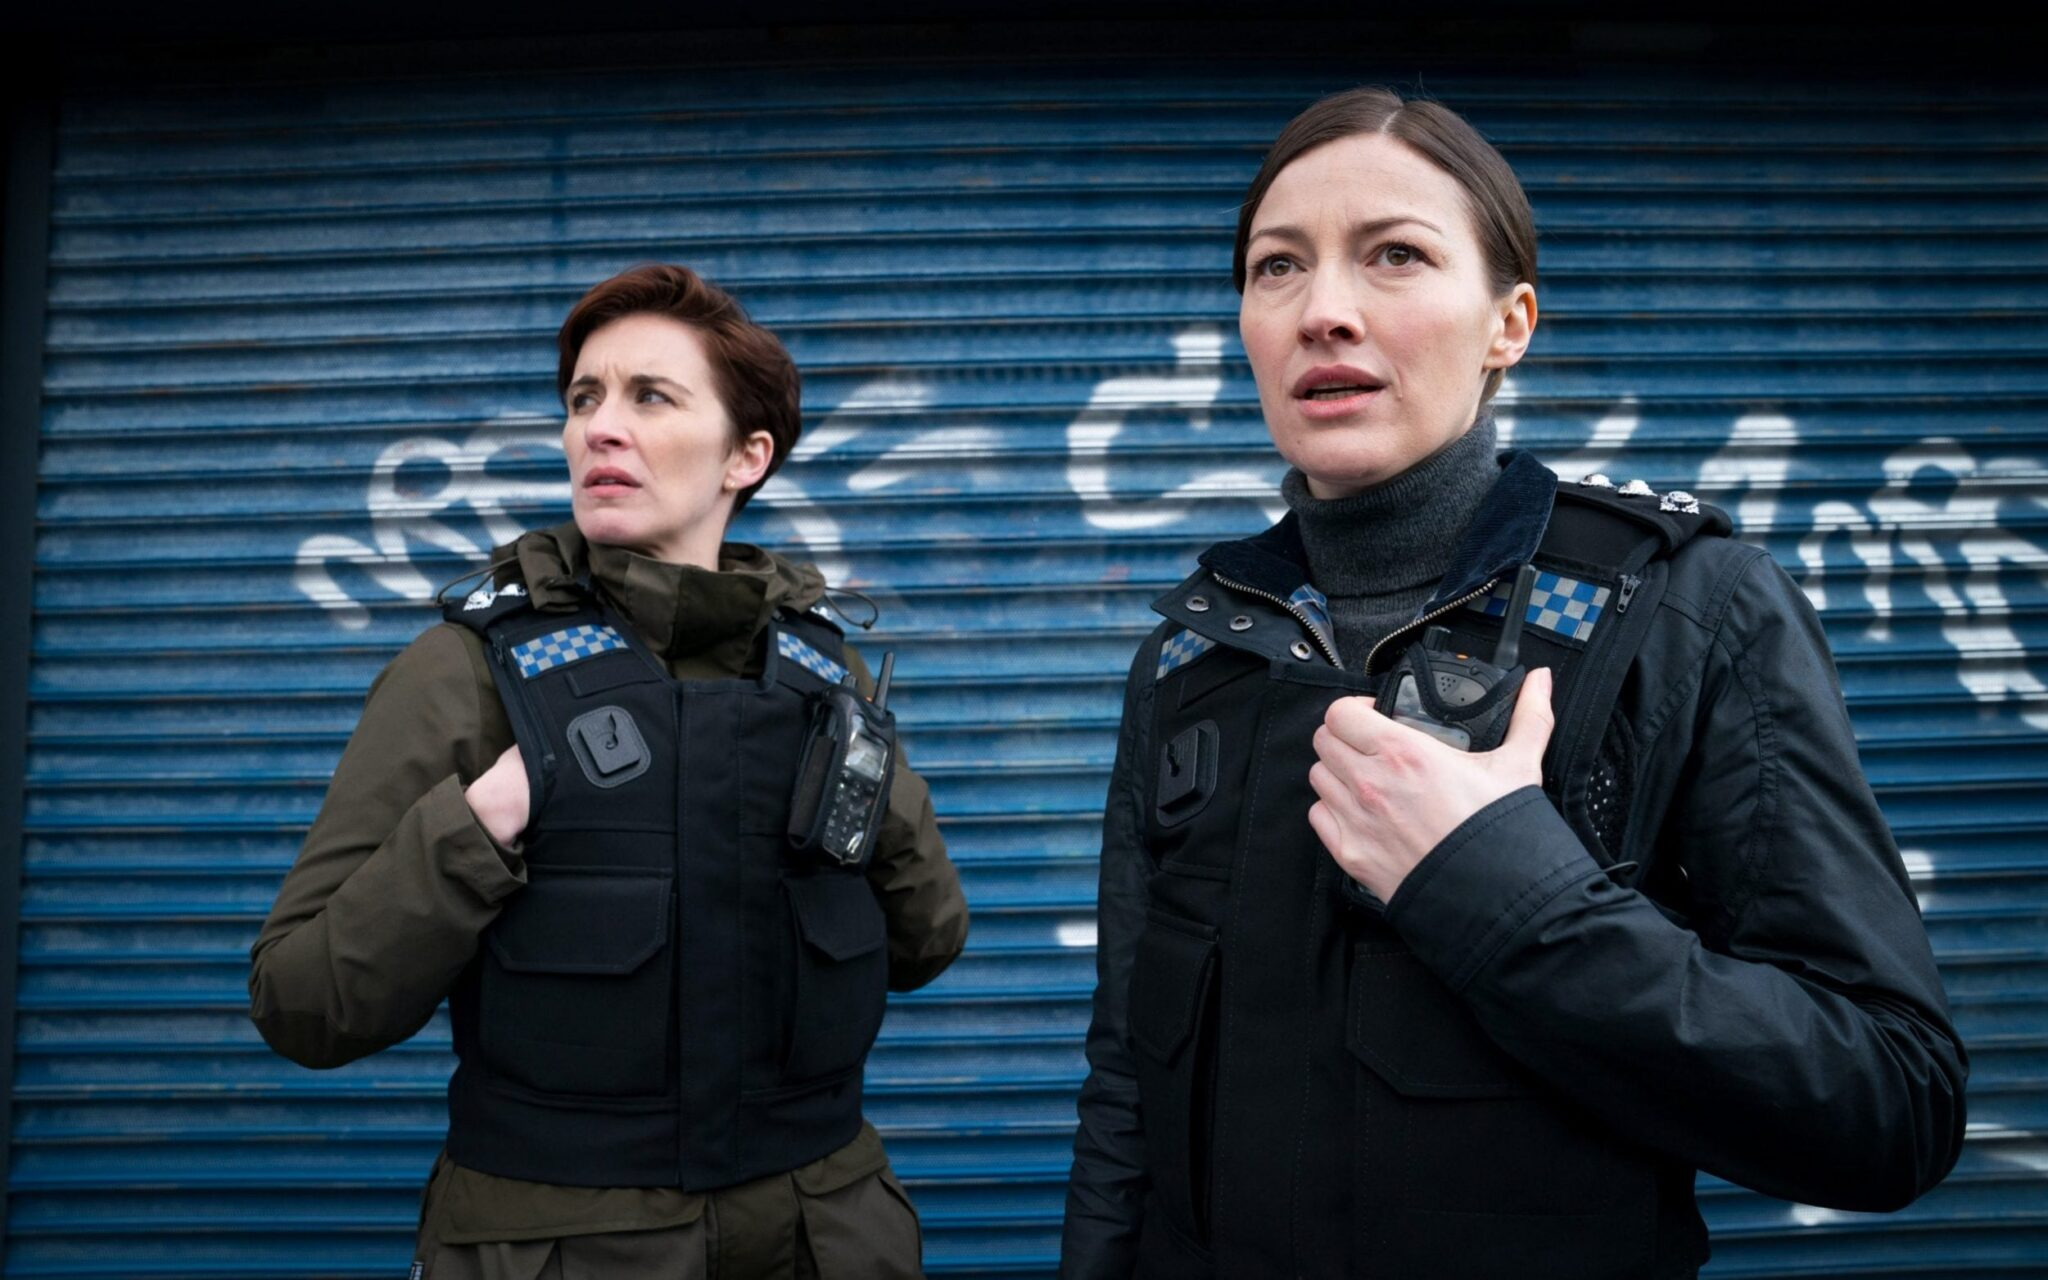 Exclusive: Trailer for Line of Duty Season 6 on BritBox Reminds Me Why I'm Obsessed With This Show